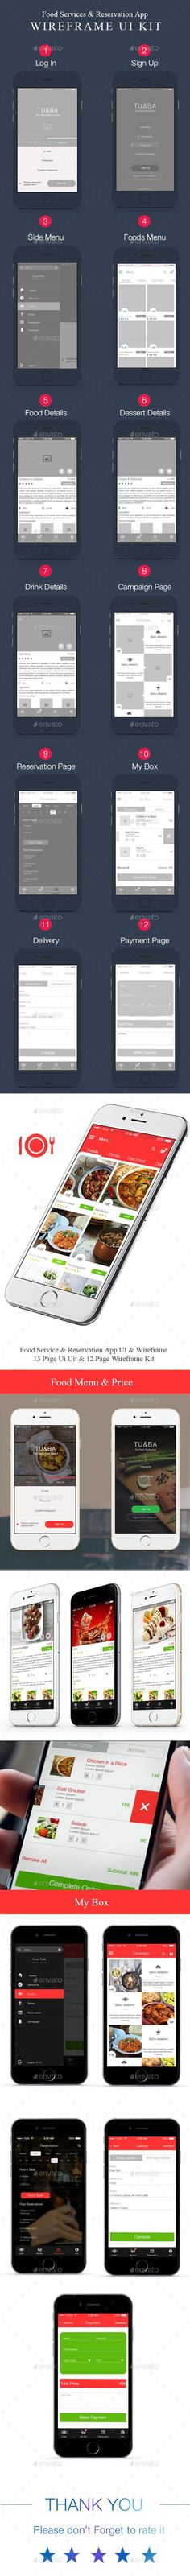 Food App User Interface & Wireframe Kit Template PSD #design #ui Download: http://graphicriver.net/item/food-app-ui-wireframe-kit/13305829?ref=ksioks. If you like UX, design, or design thinking, check out theuxblog.com